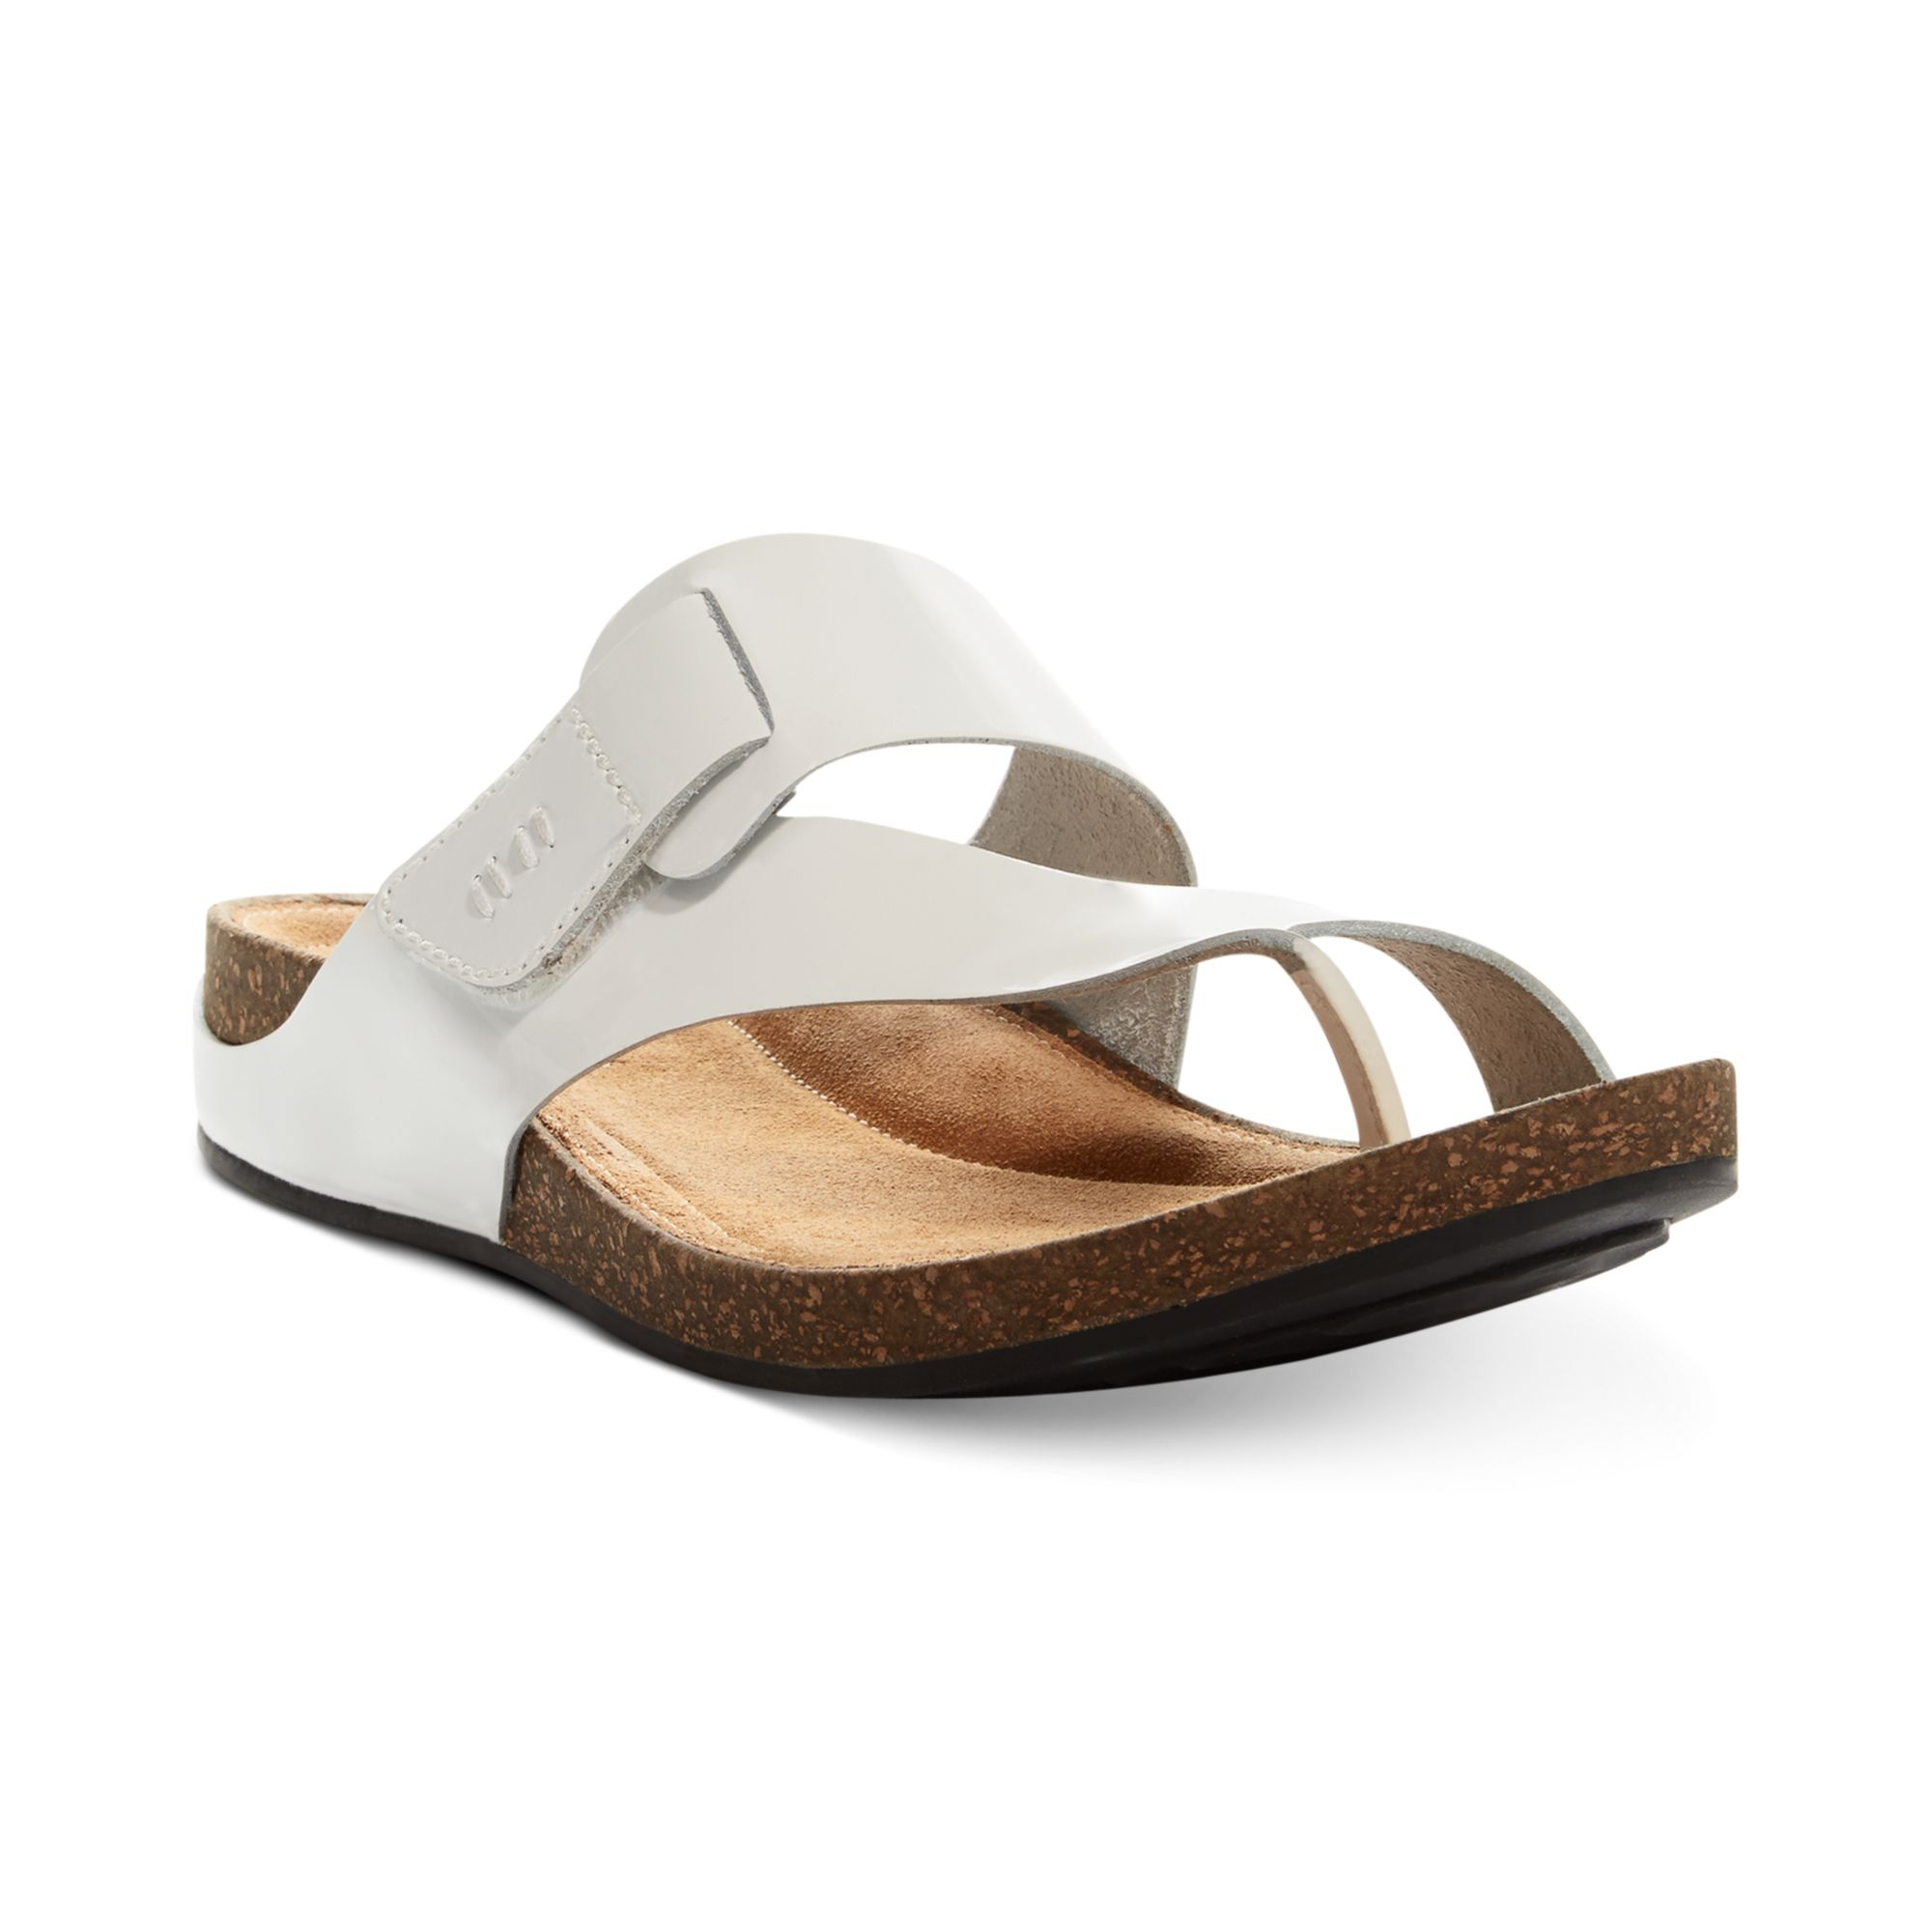 Clarks Womens Artisan Perri Coast Footbed Sandals In White